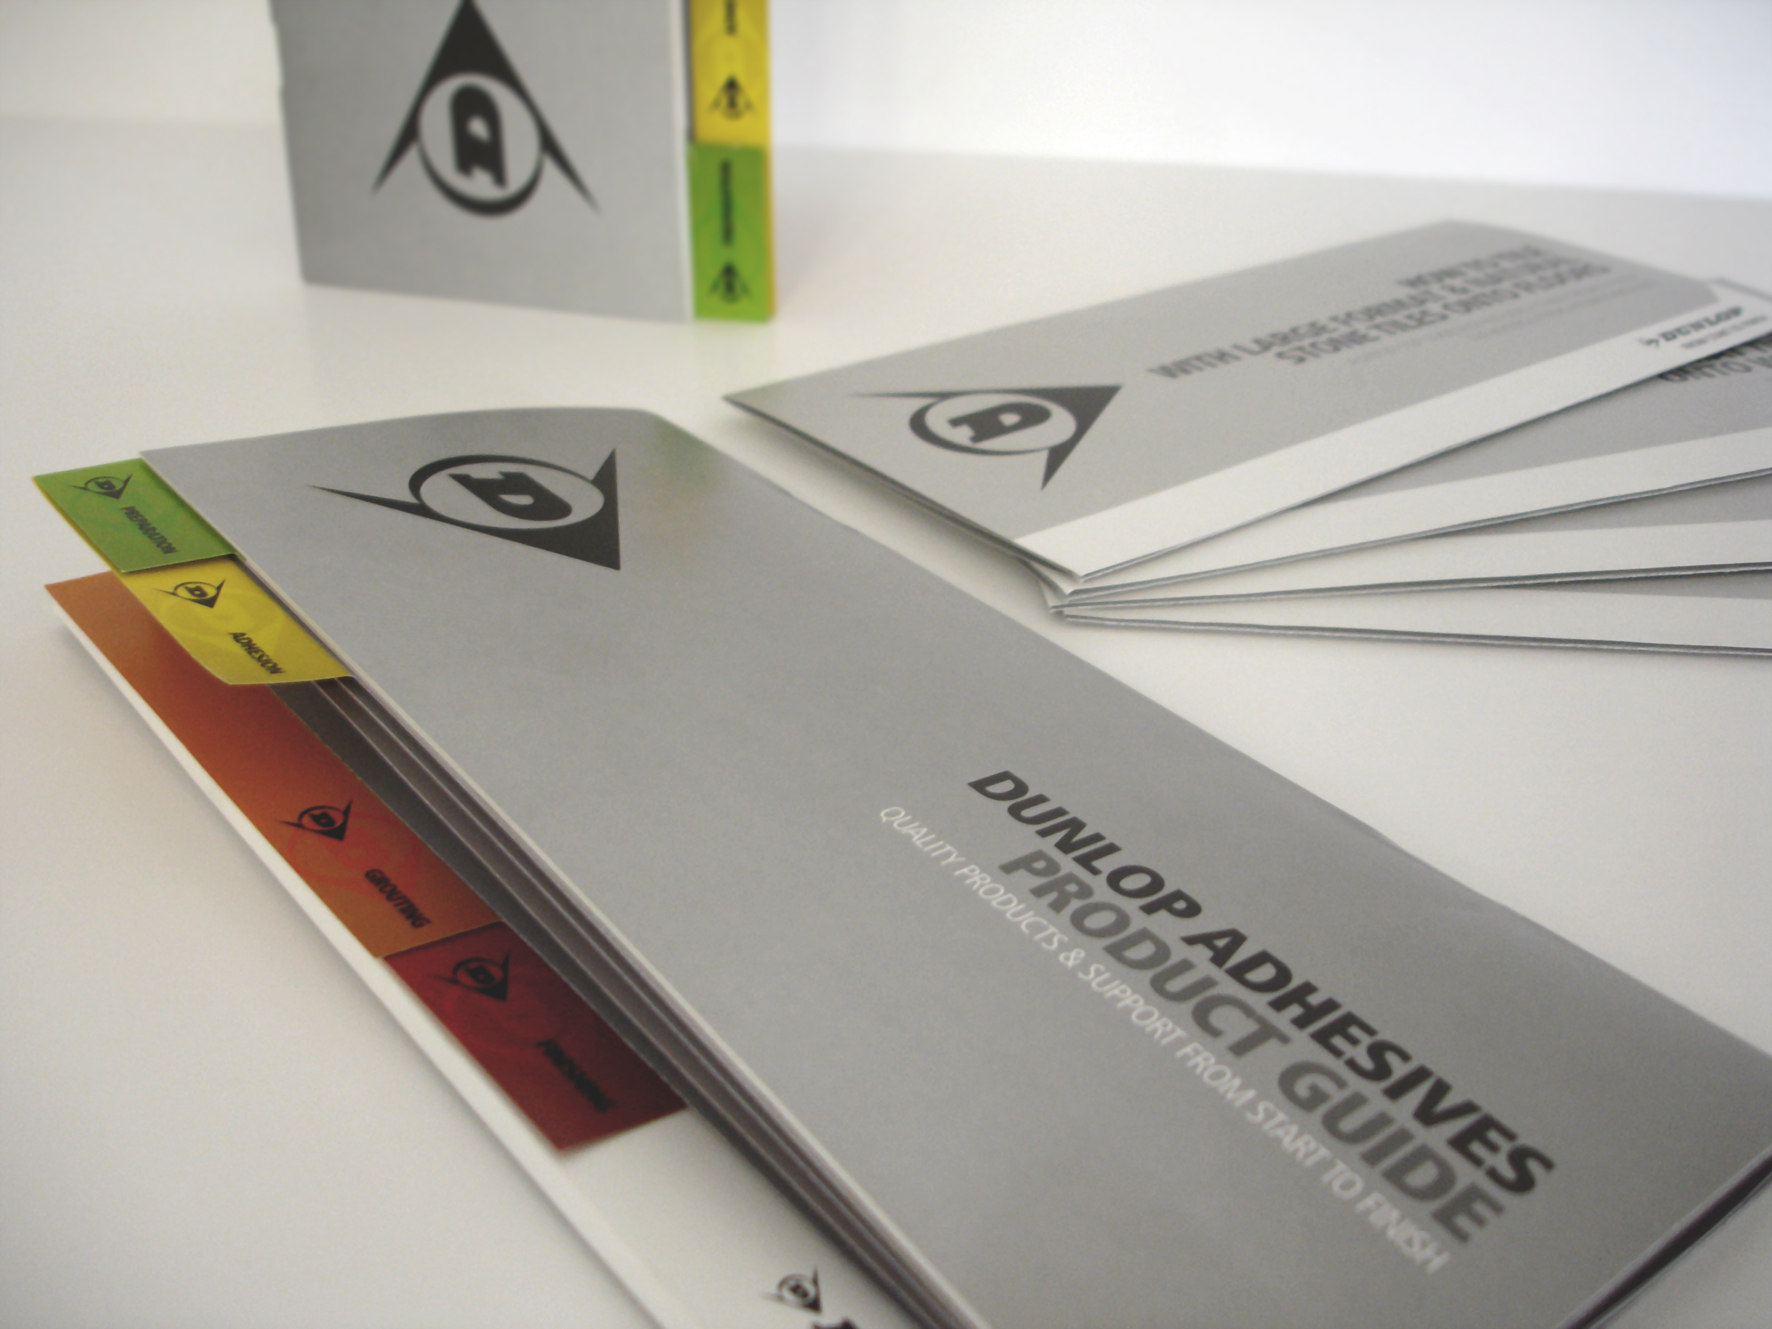 Dunlop Adhesives launches 'singles' lines for ease of ordering